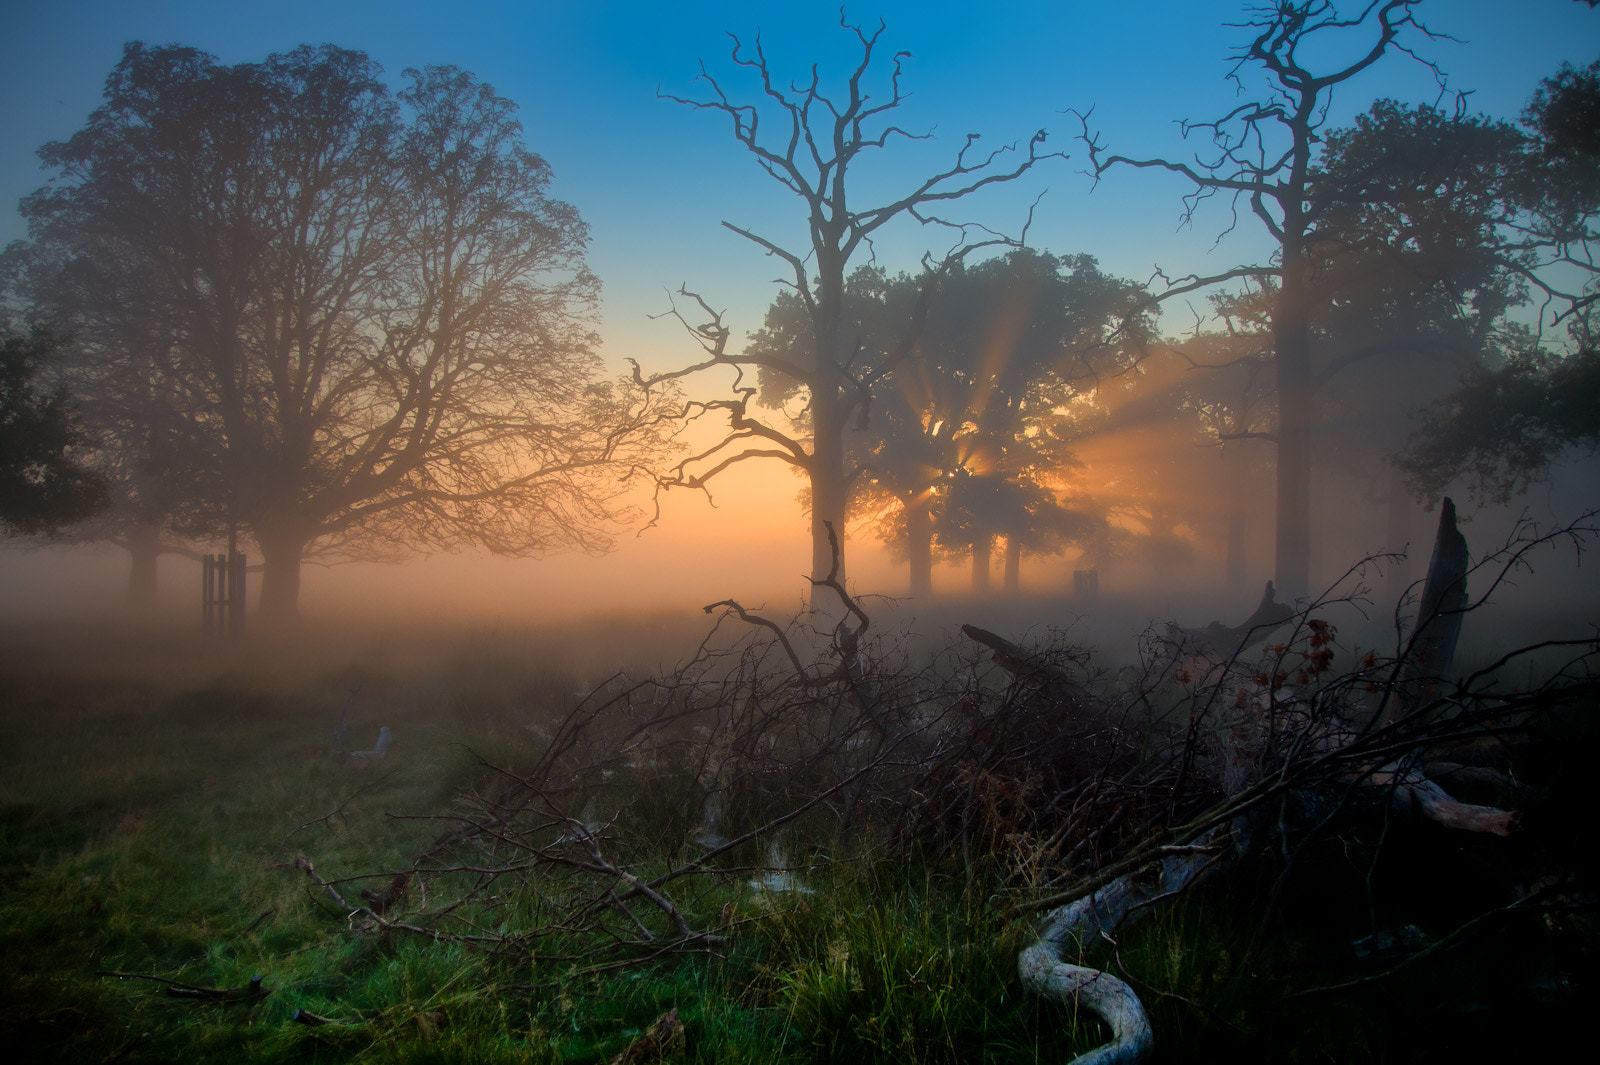 Photograph Richmond Park - Sunrise by Steve Bryson on 500px